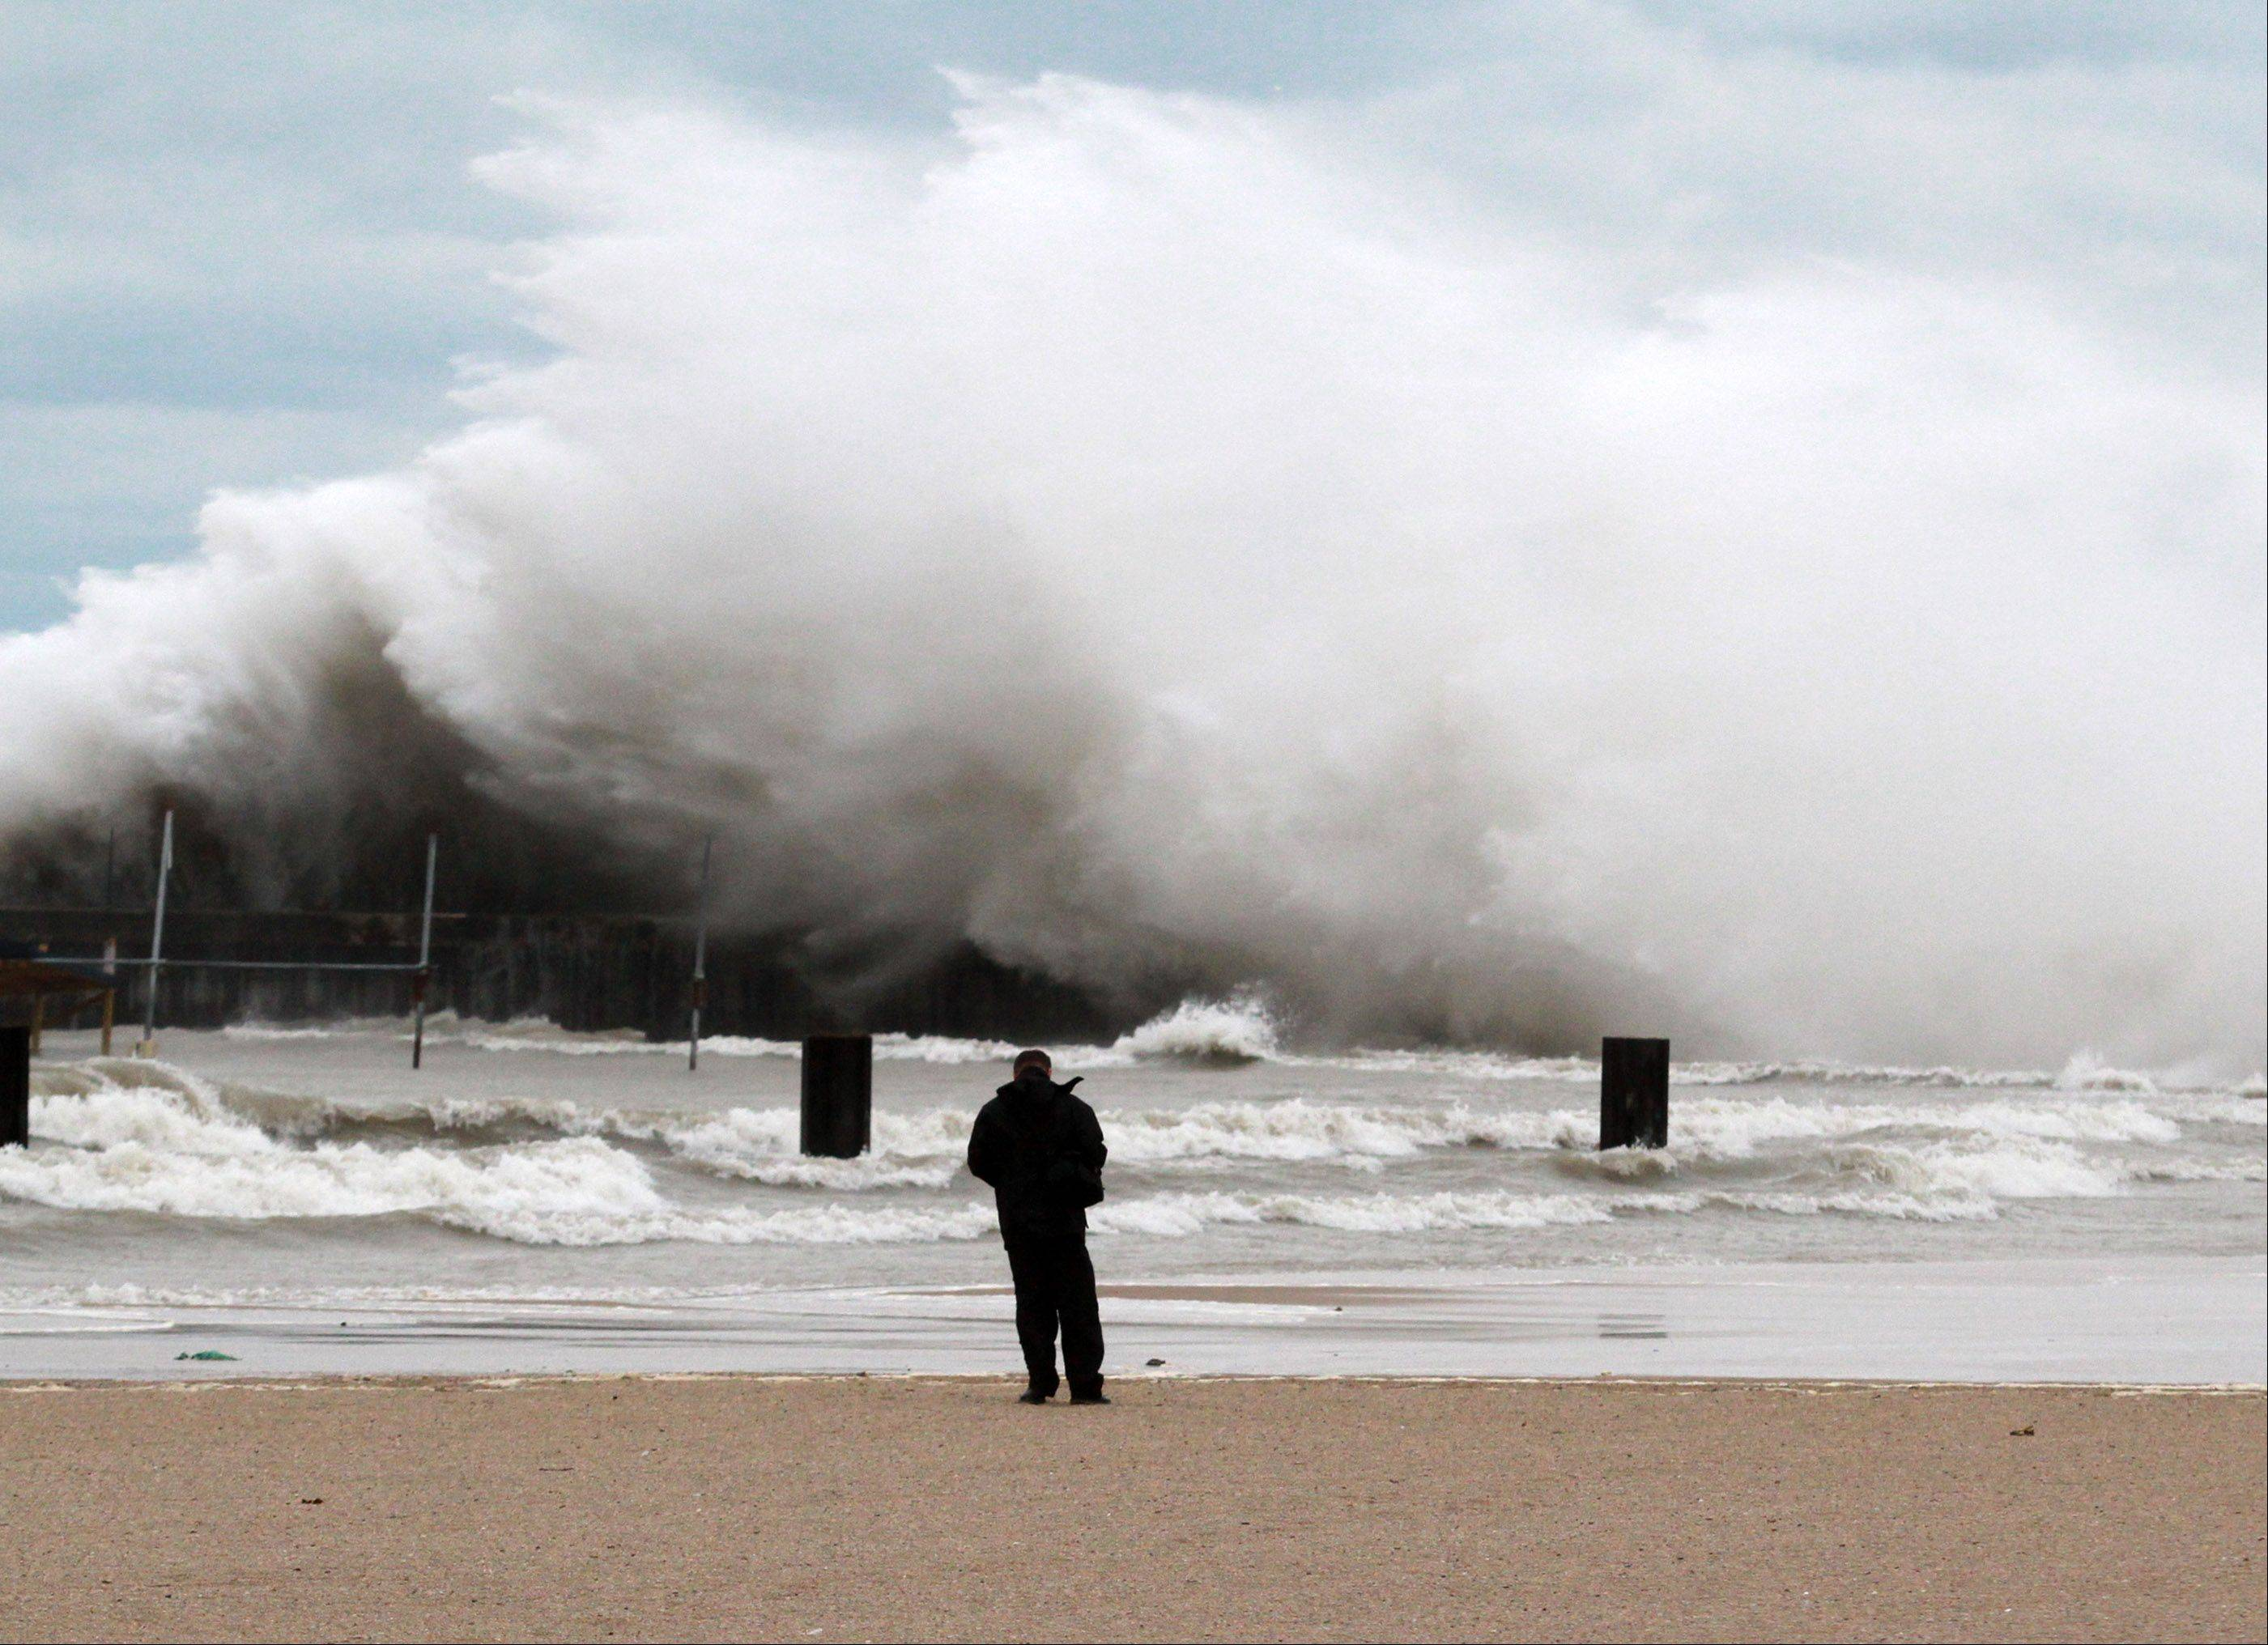 Alain Marginean of Chicago snaps photos of the massive waves that came ashore Tuesday morning on North Avenue Beach in Chicago. Waves as high as 20 feet pounded the city's lakefront Tuesday, an artifact of the superstorm that's devastated parts of the East Coast.